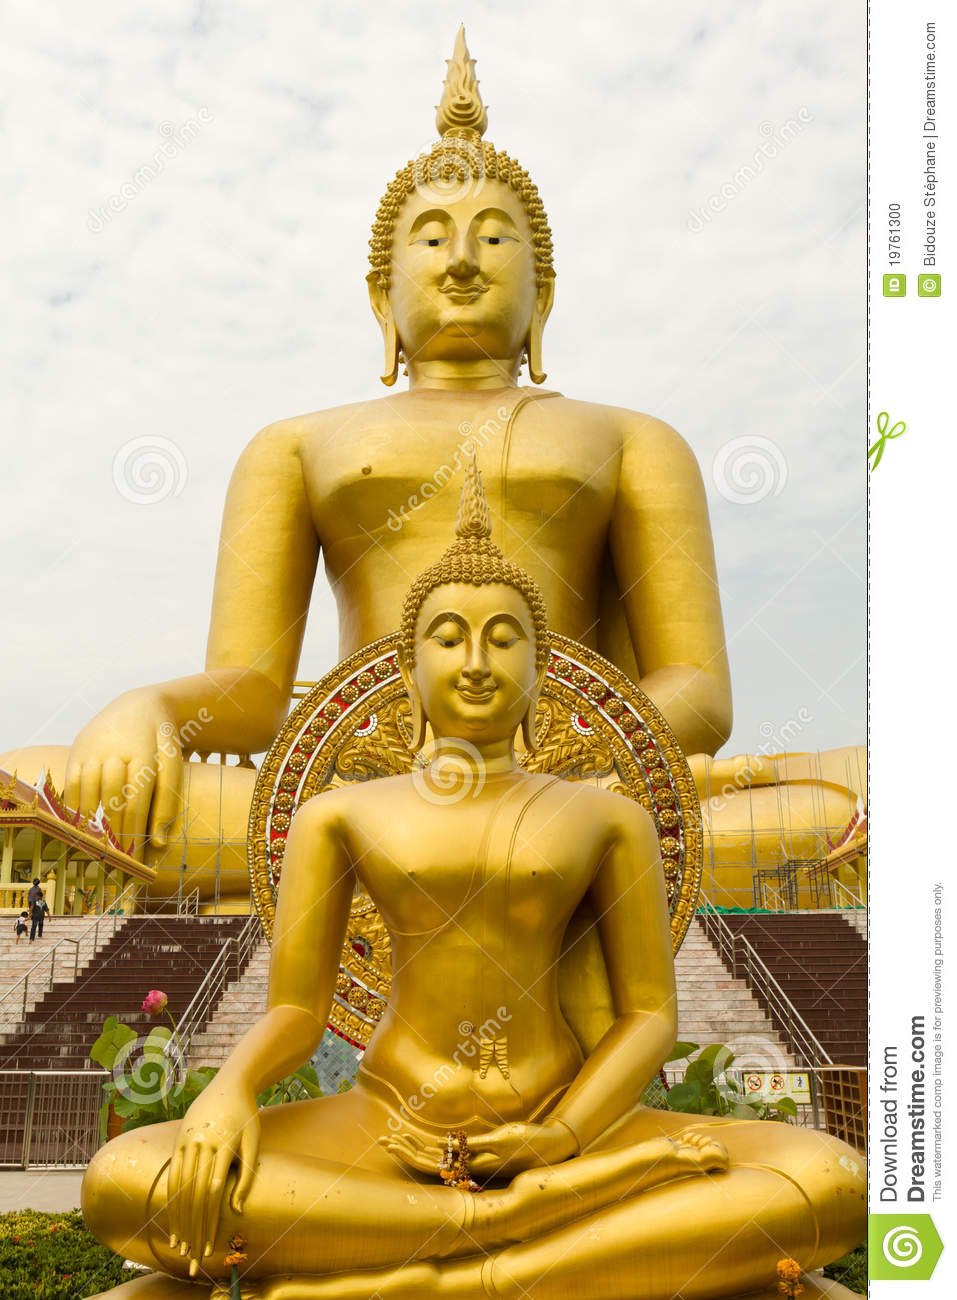 Two golden buddha